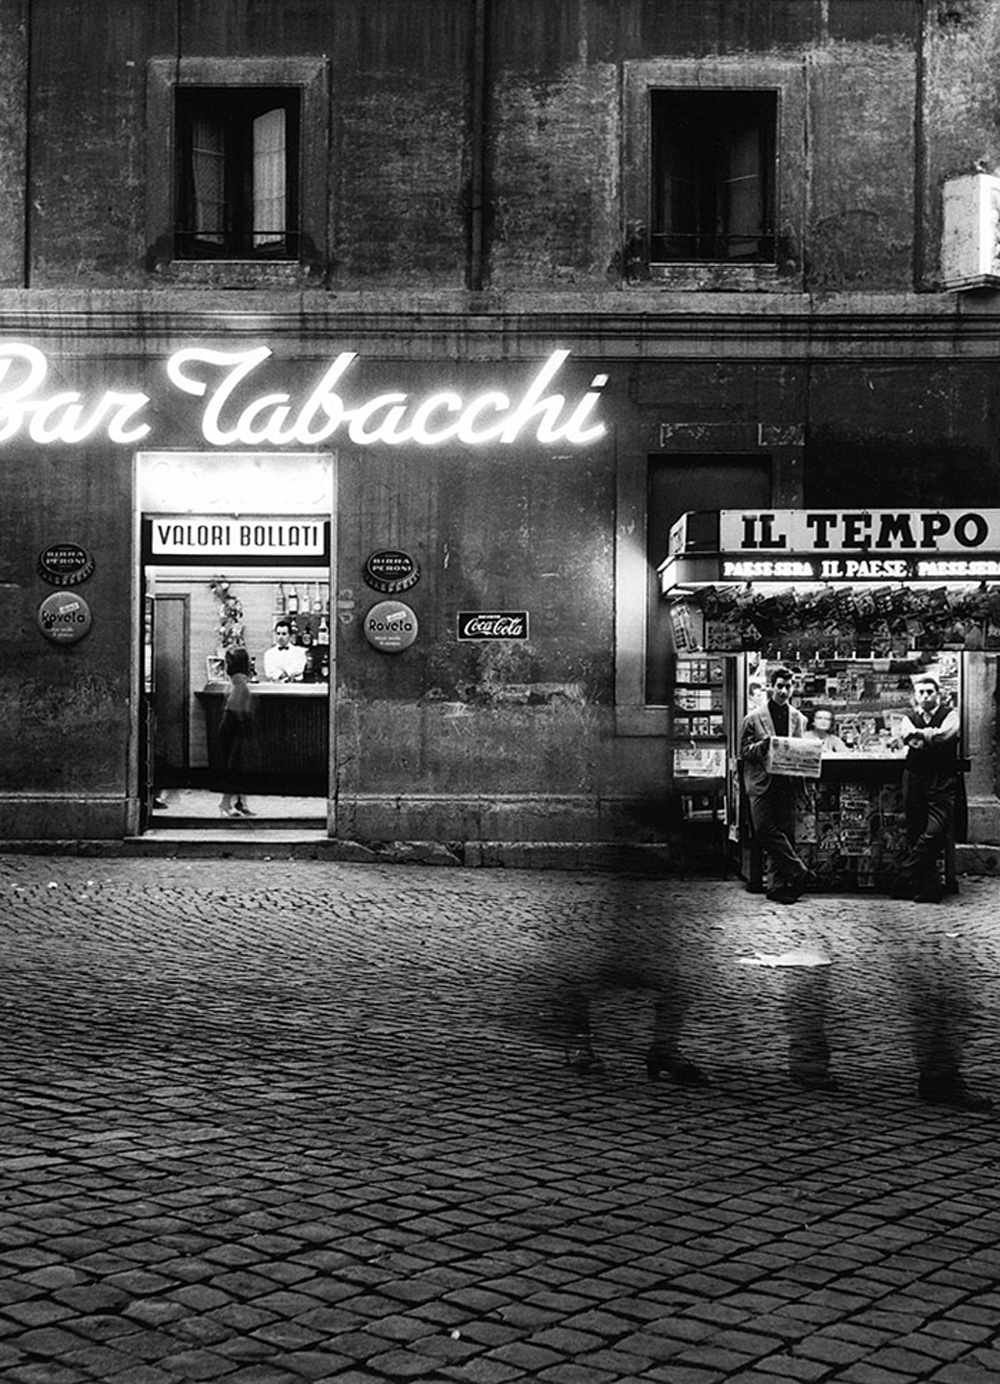 Paris Photo:  William Klein Summer evening, via di Monserrato, Rome, 1956 Gelatin silve print, printed later WILLIAM KLEIN/GALLERY FIFTY ONE Exhibitor: GALLERY FIFTY ONE